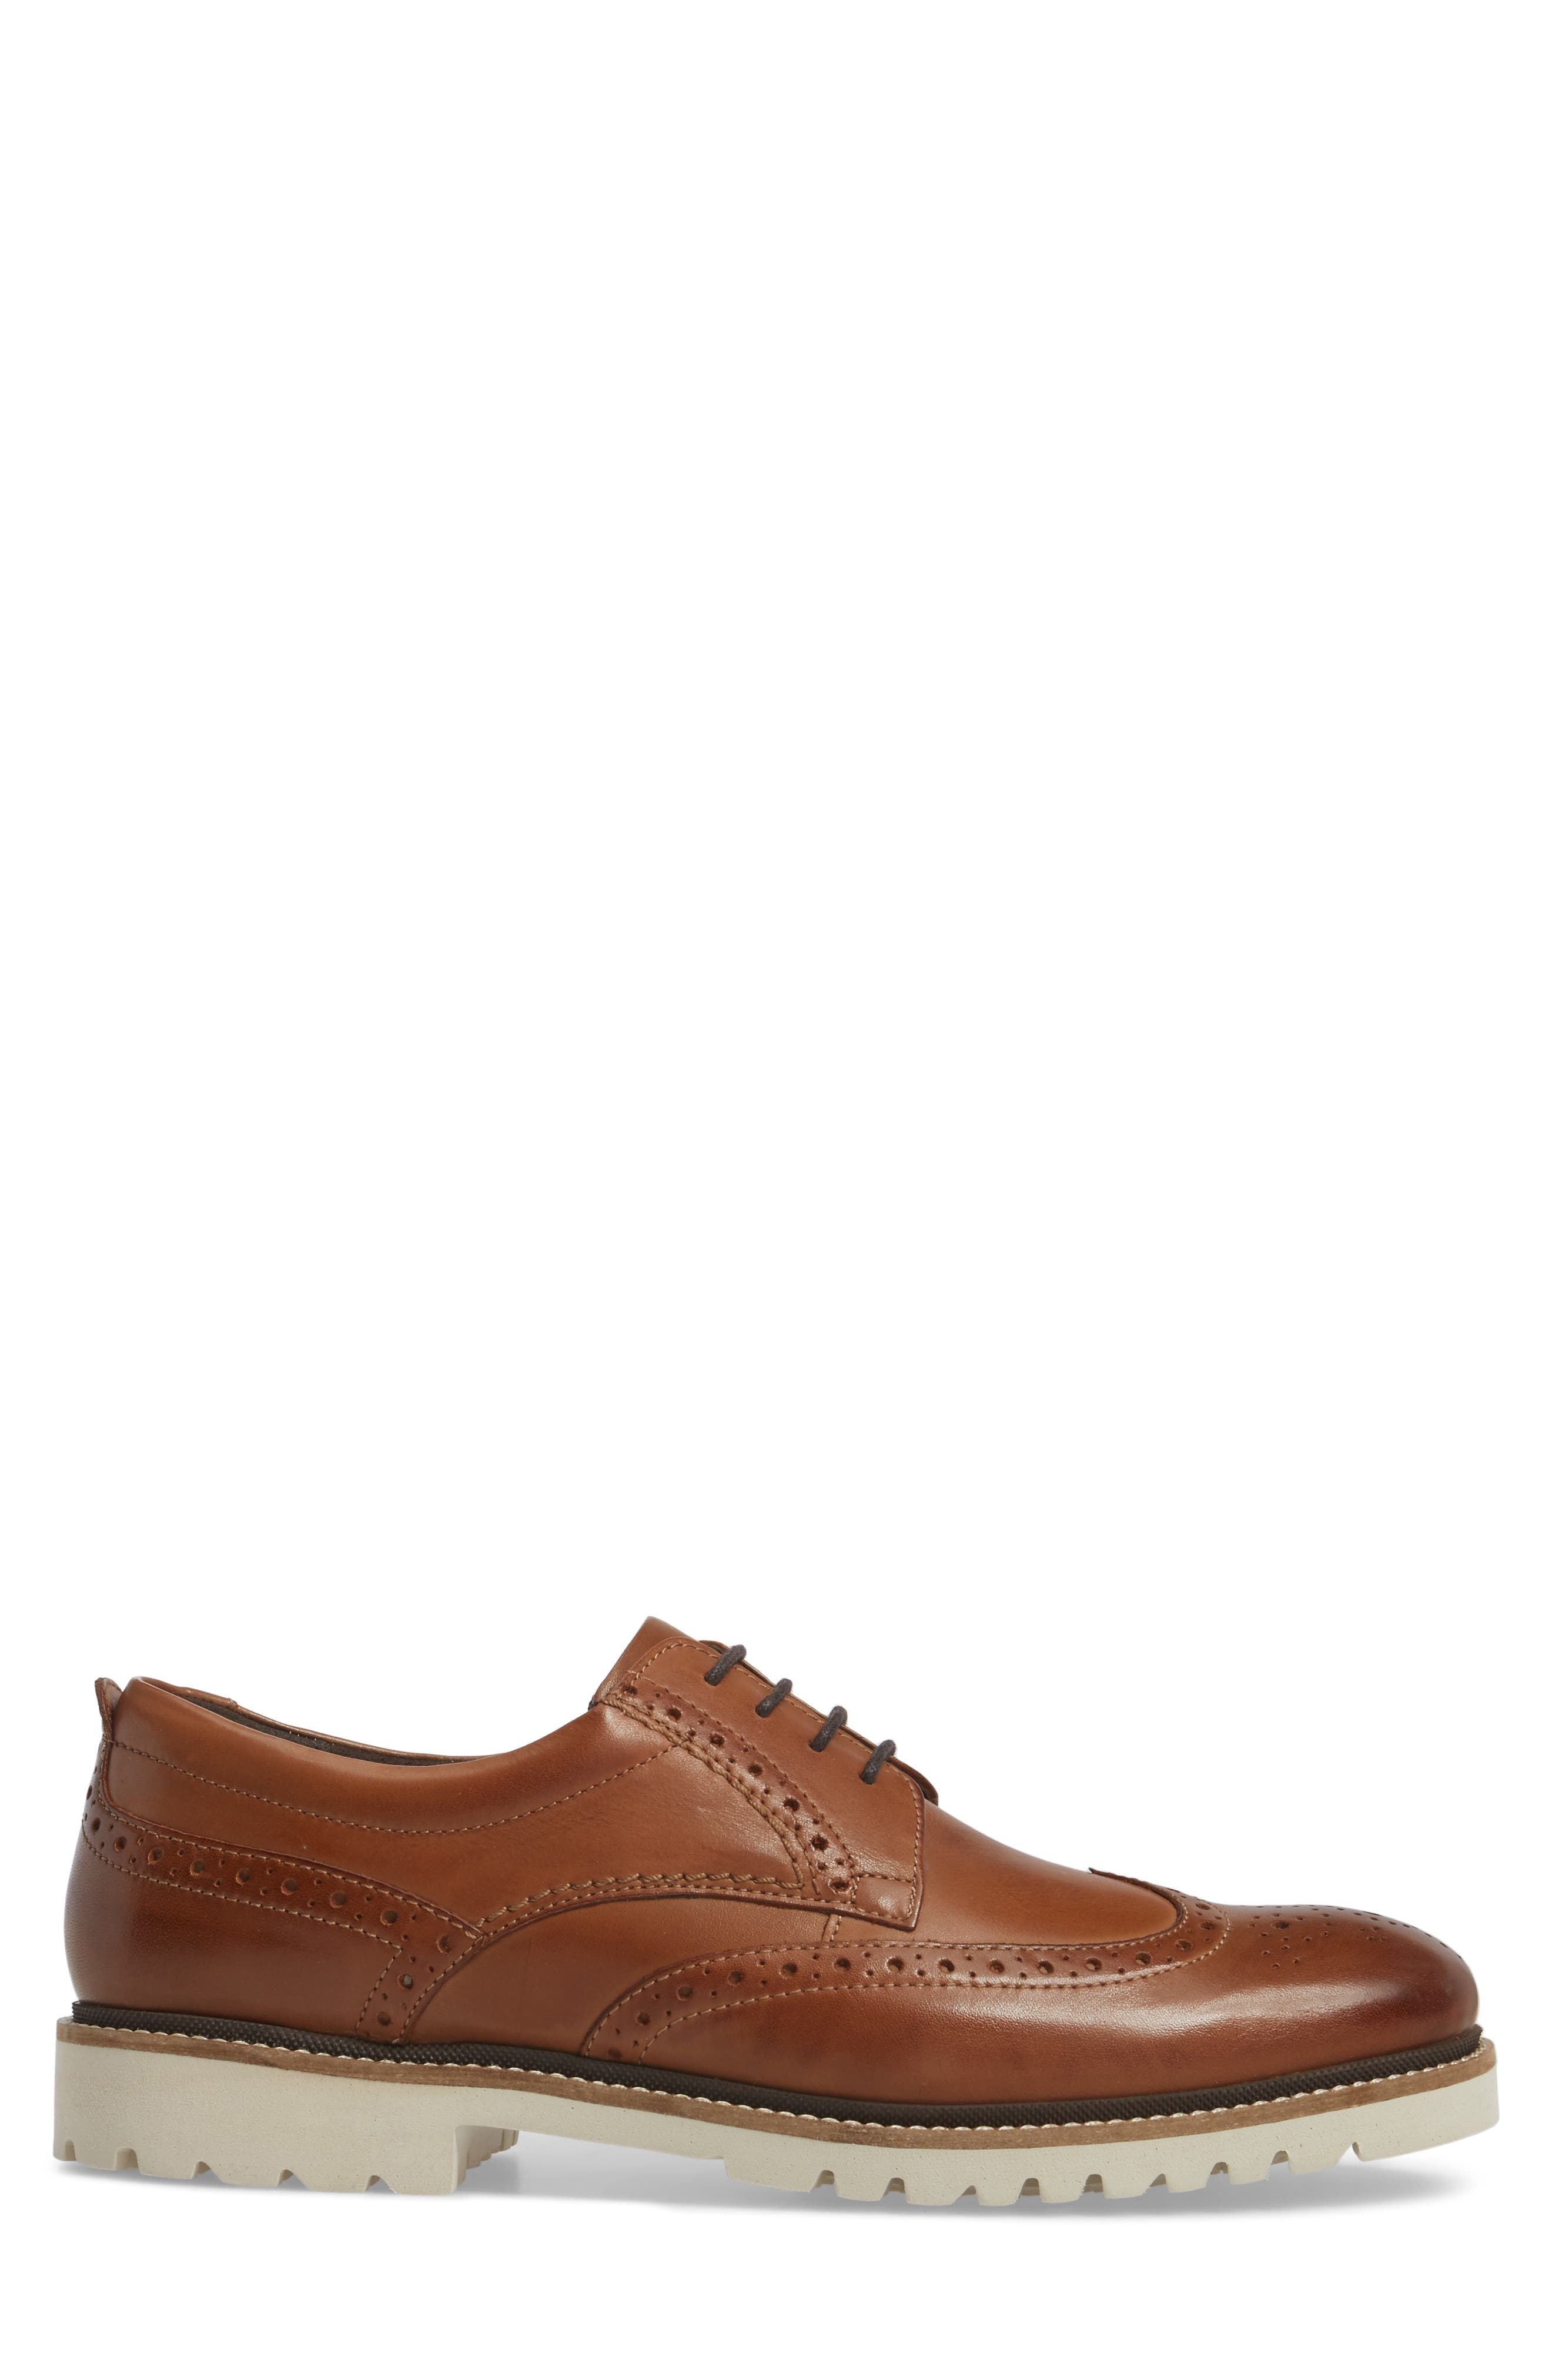 Marshall Wingtip,                             Alternate thumbnail 3, color,                             Cognac Leather